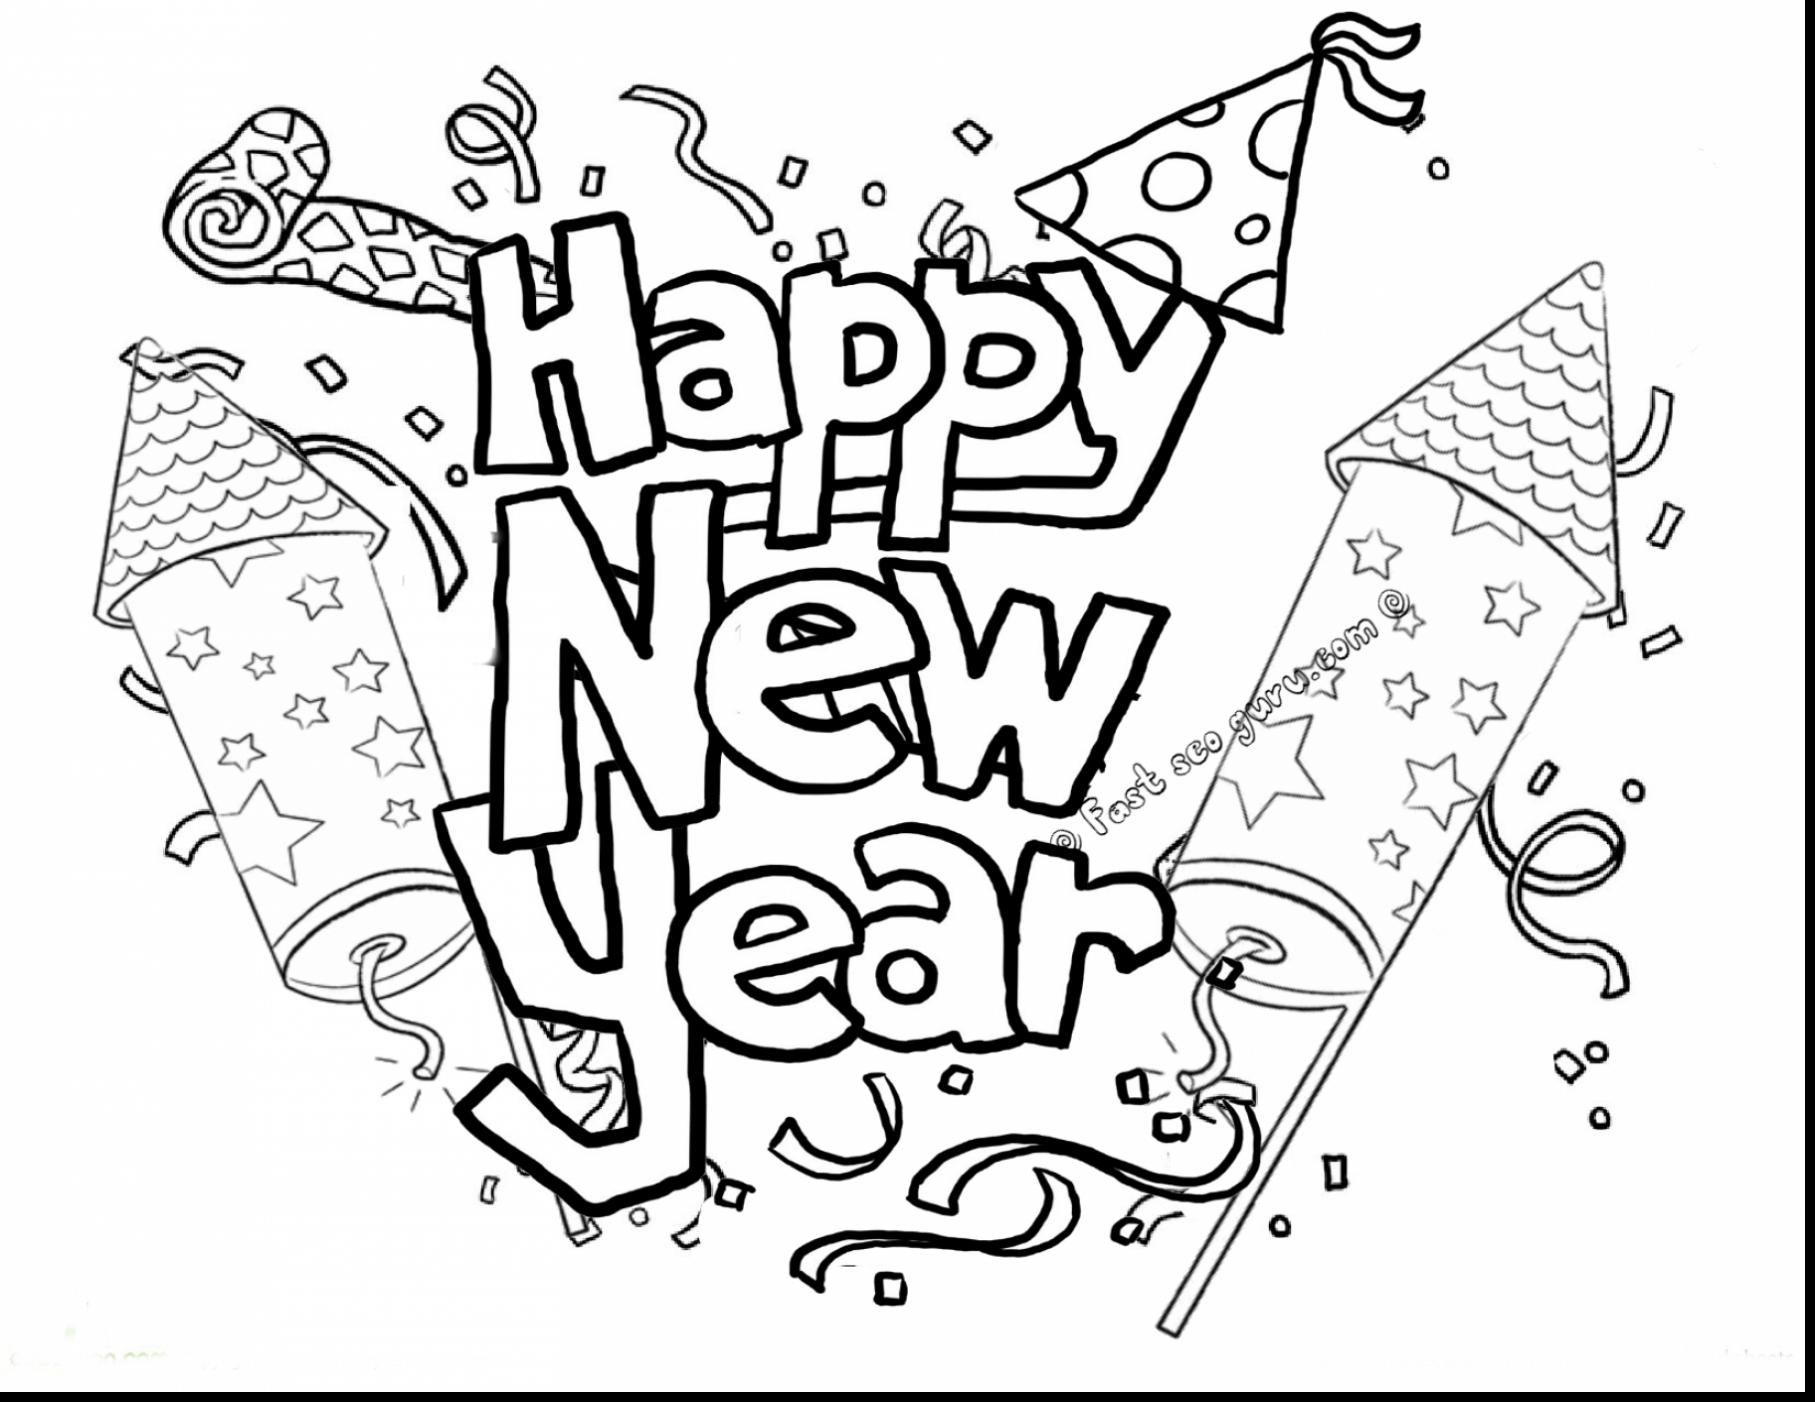 1815x1402 Direct Happy New Year Coloring Pages Chin